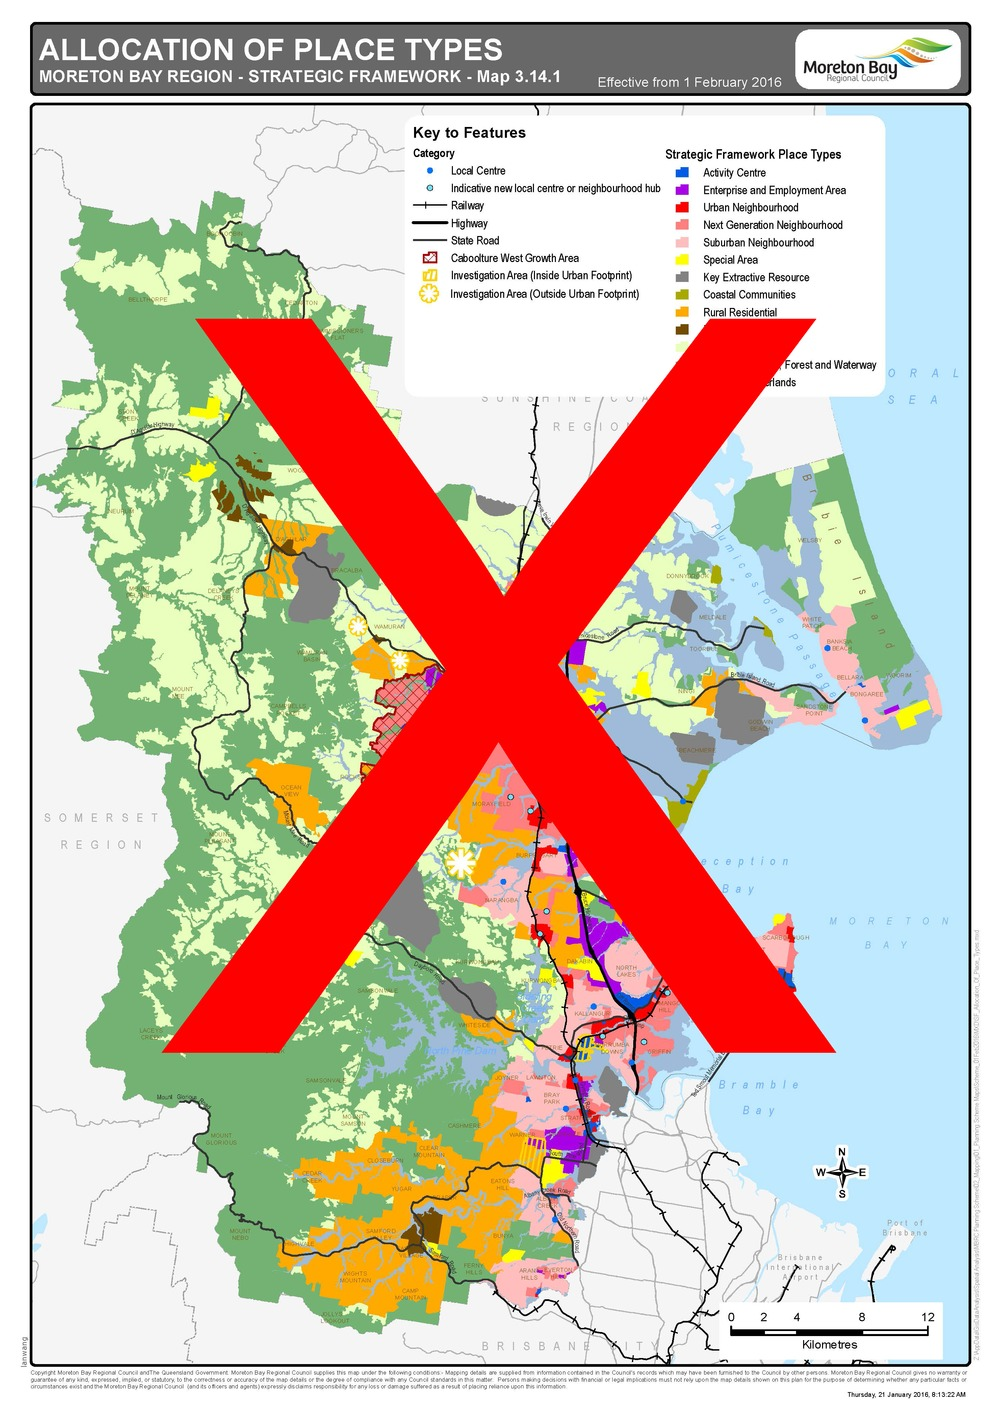 Moreton bay regional council mbrc planning scheme version 4 map 3141 allocation of place types sciox Gallery